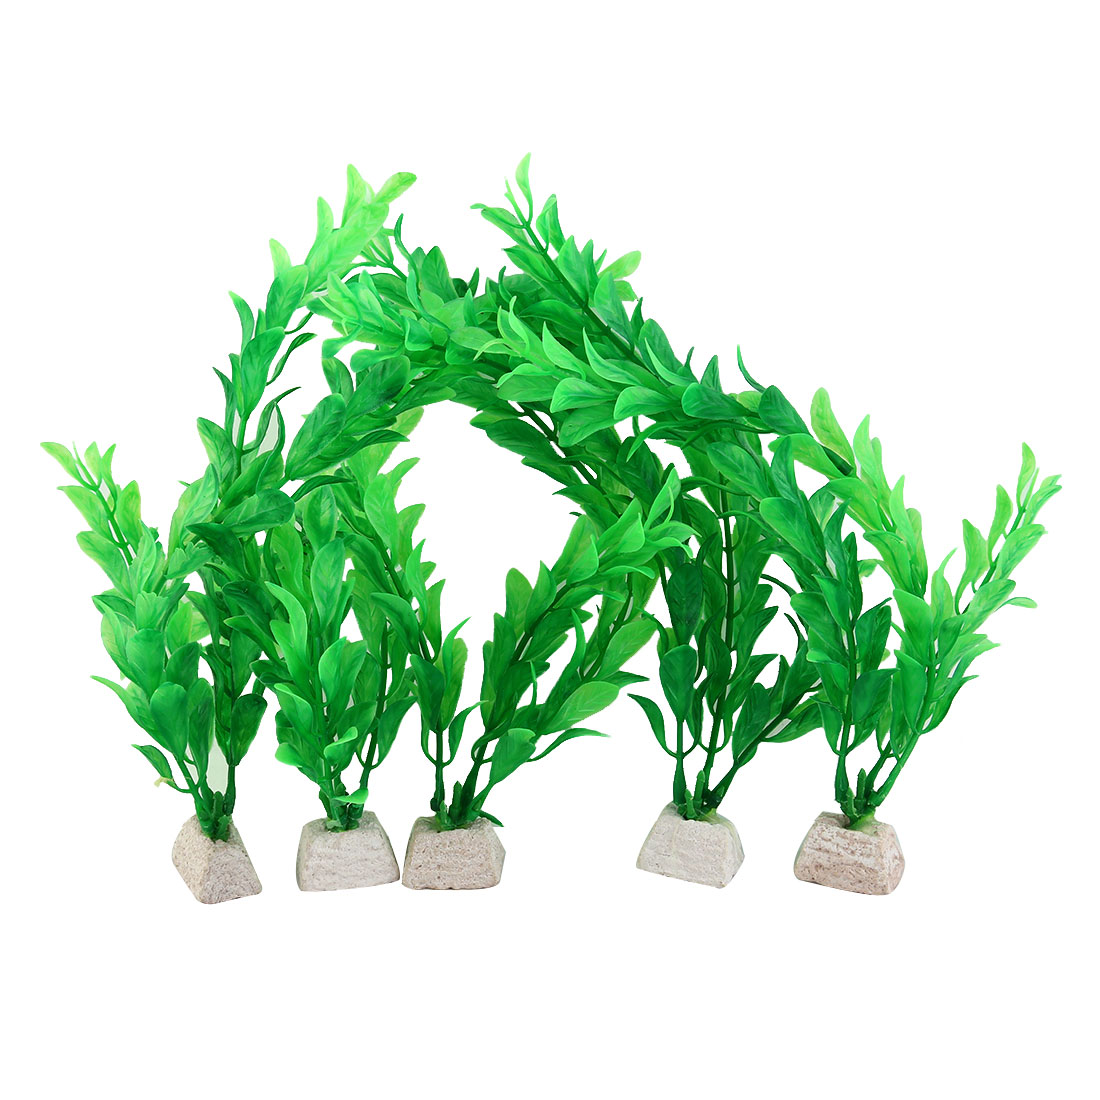 Fish Tank Green Artificial Water Grass Plant Decoration 5pcs